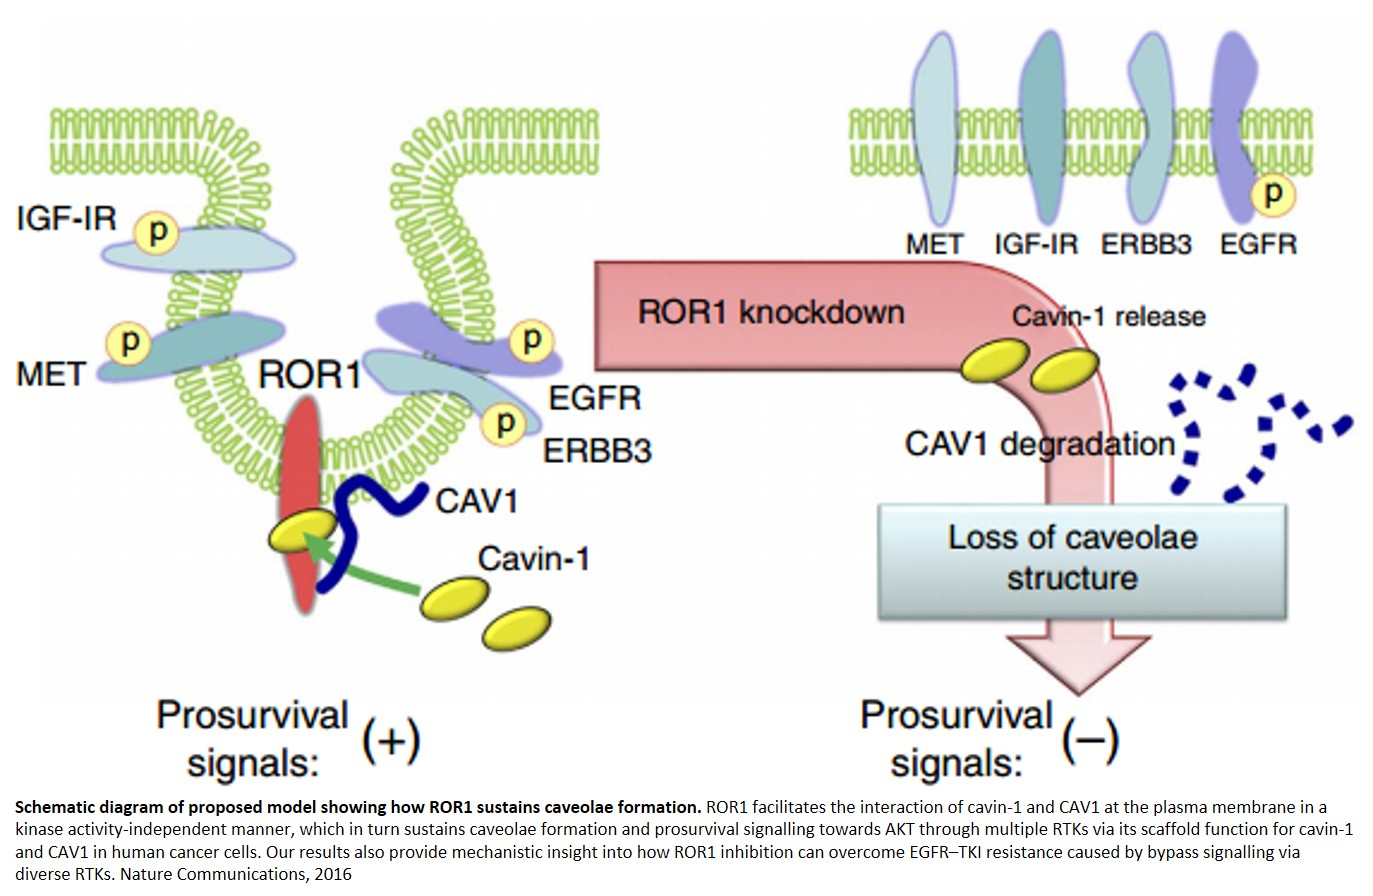 Scaffold function of an orphan receptor in drug resistance cancer